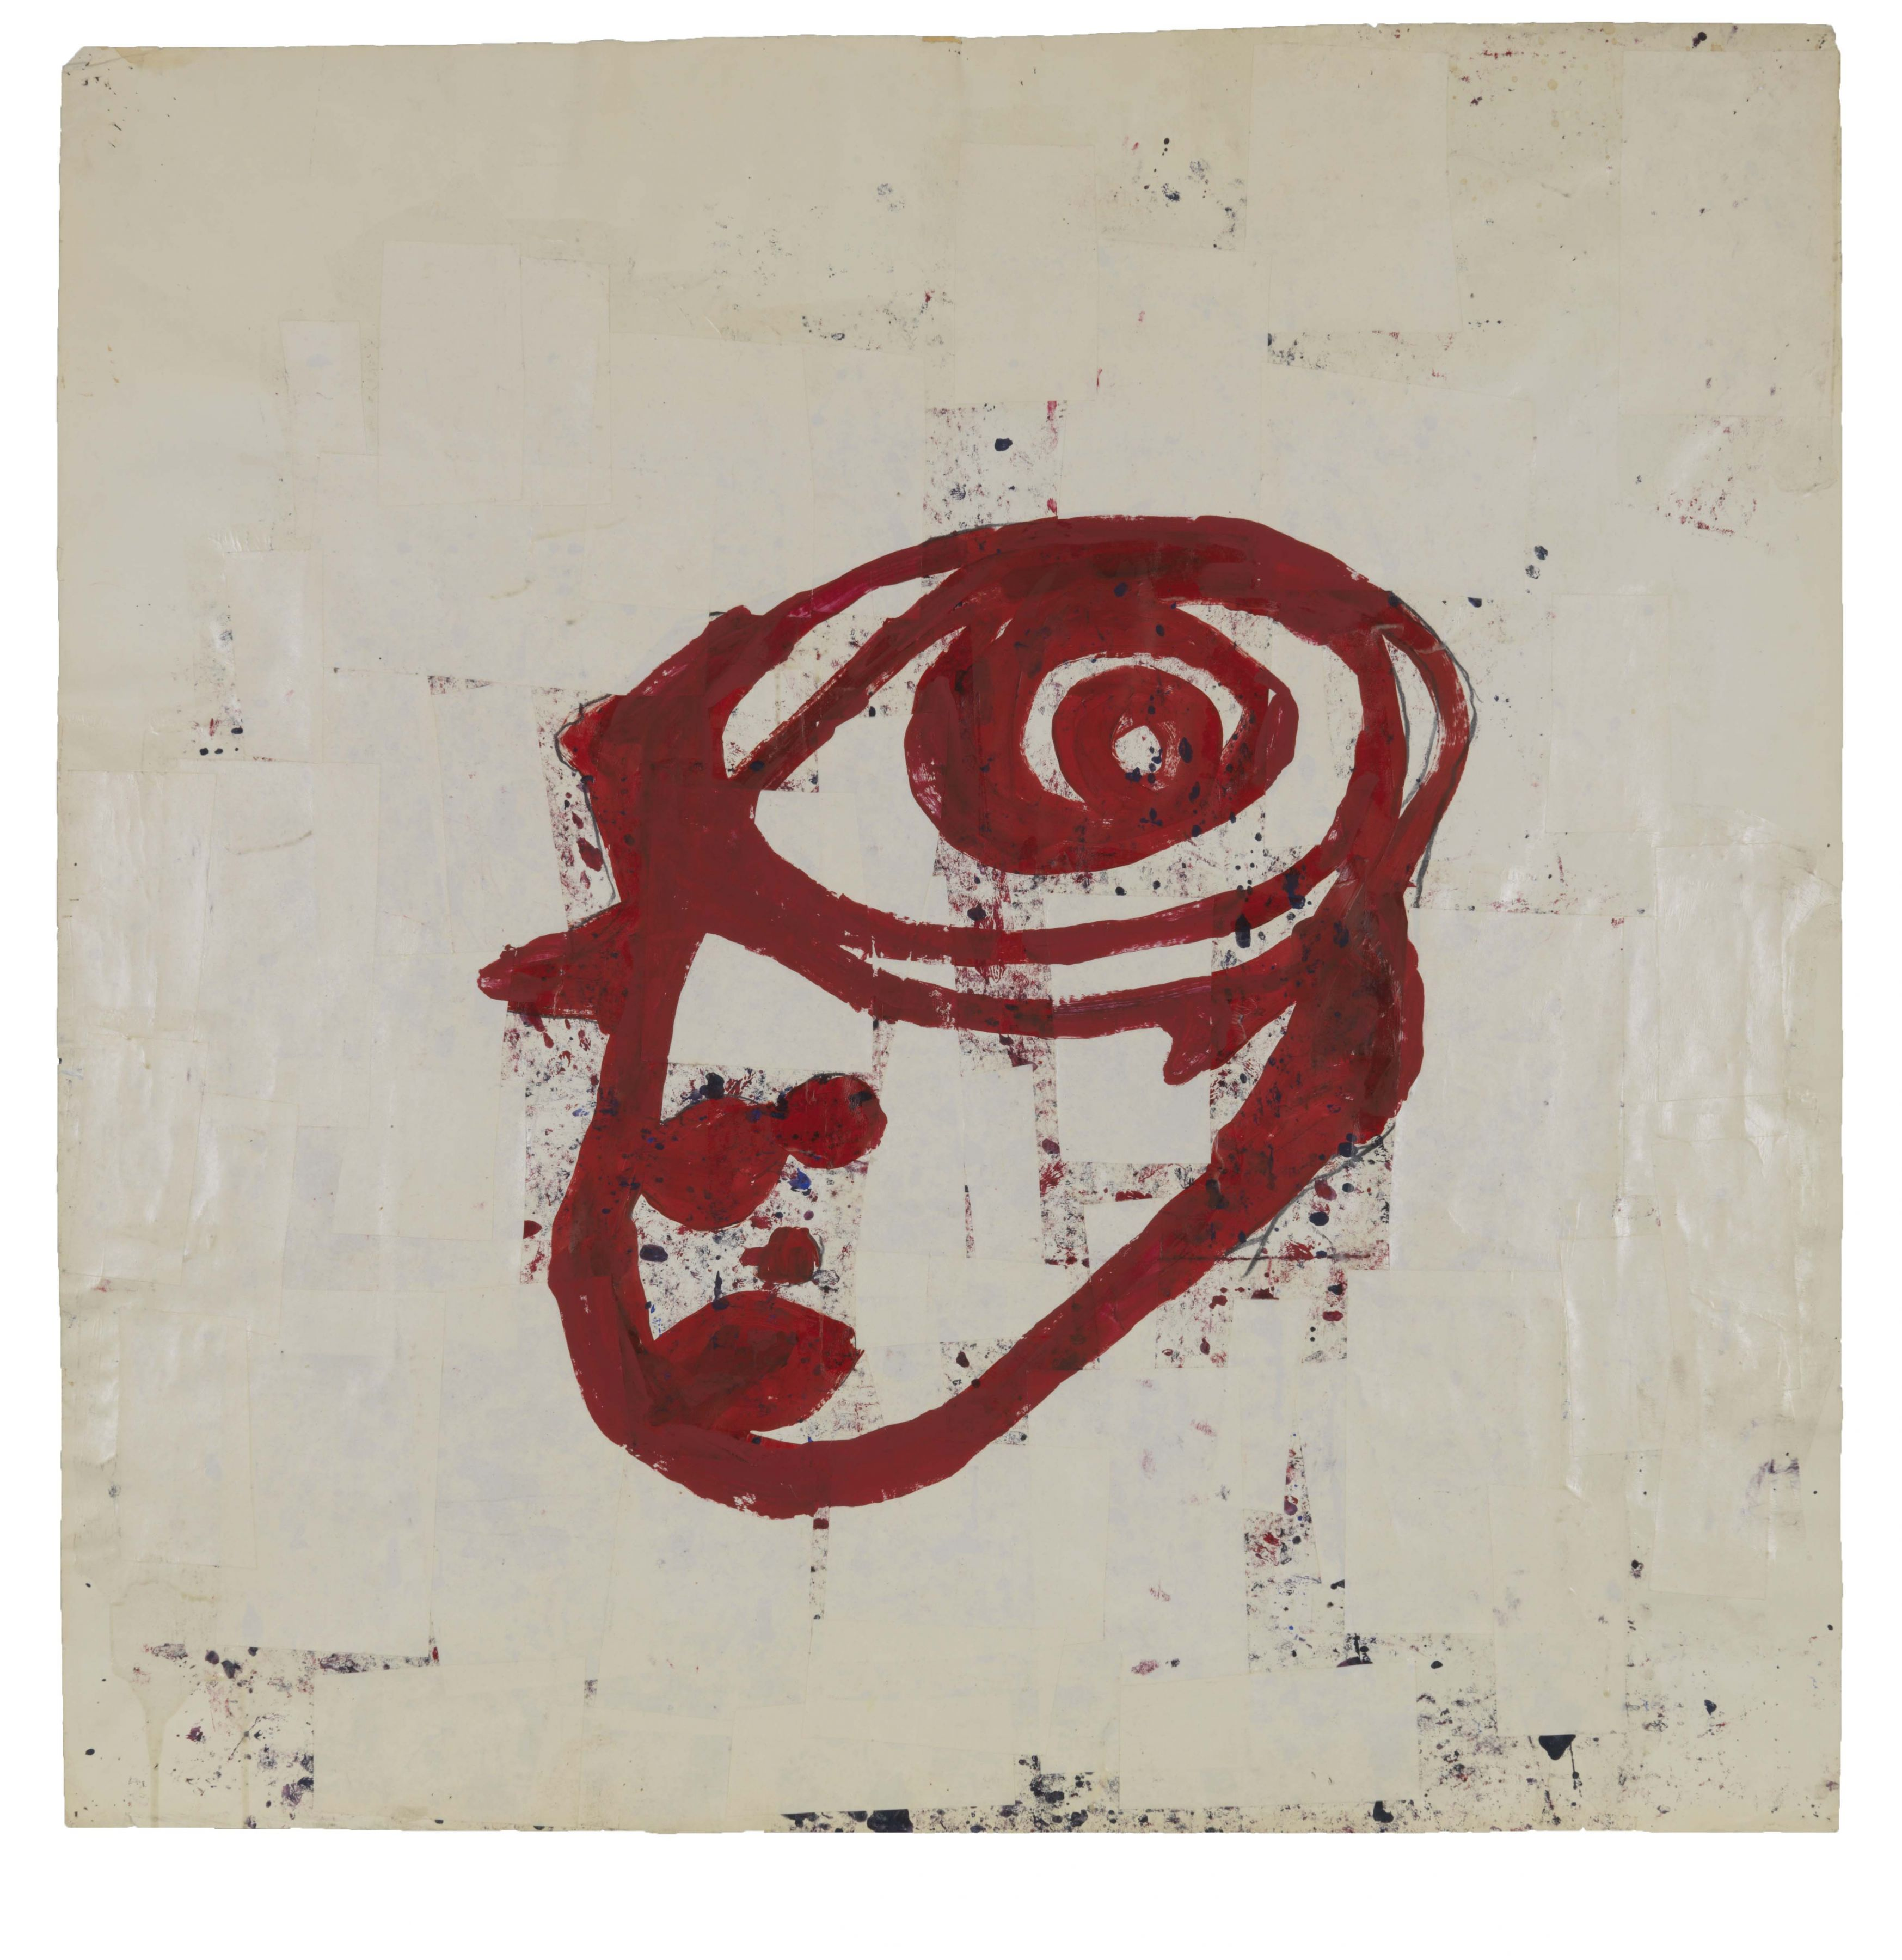 Untitled (Spiral Head), 1983, Graphite, tempera and paper collage on paper